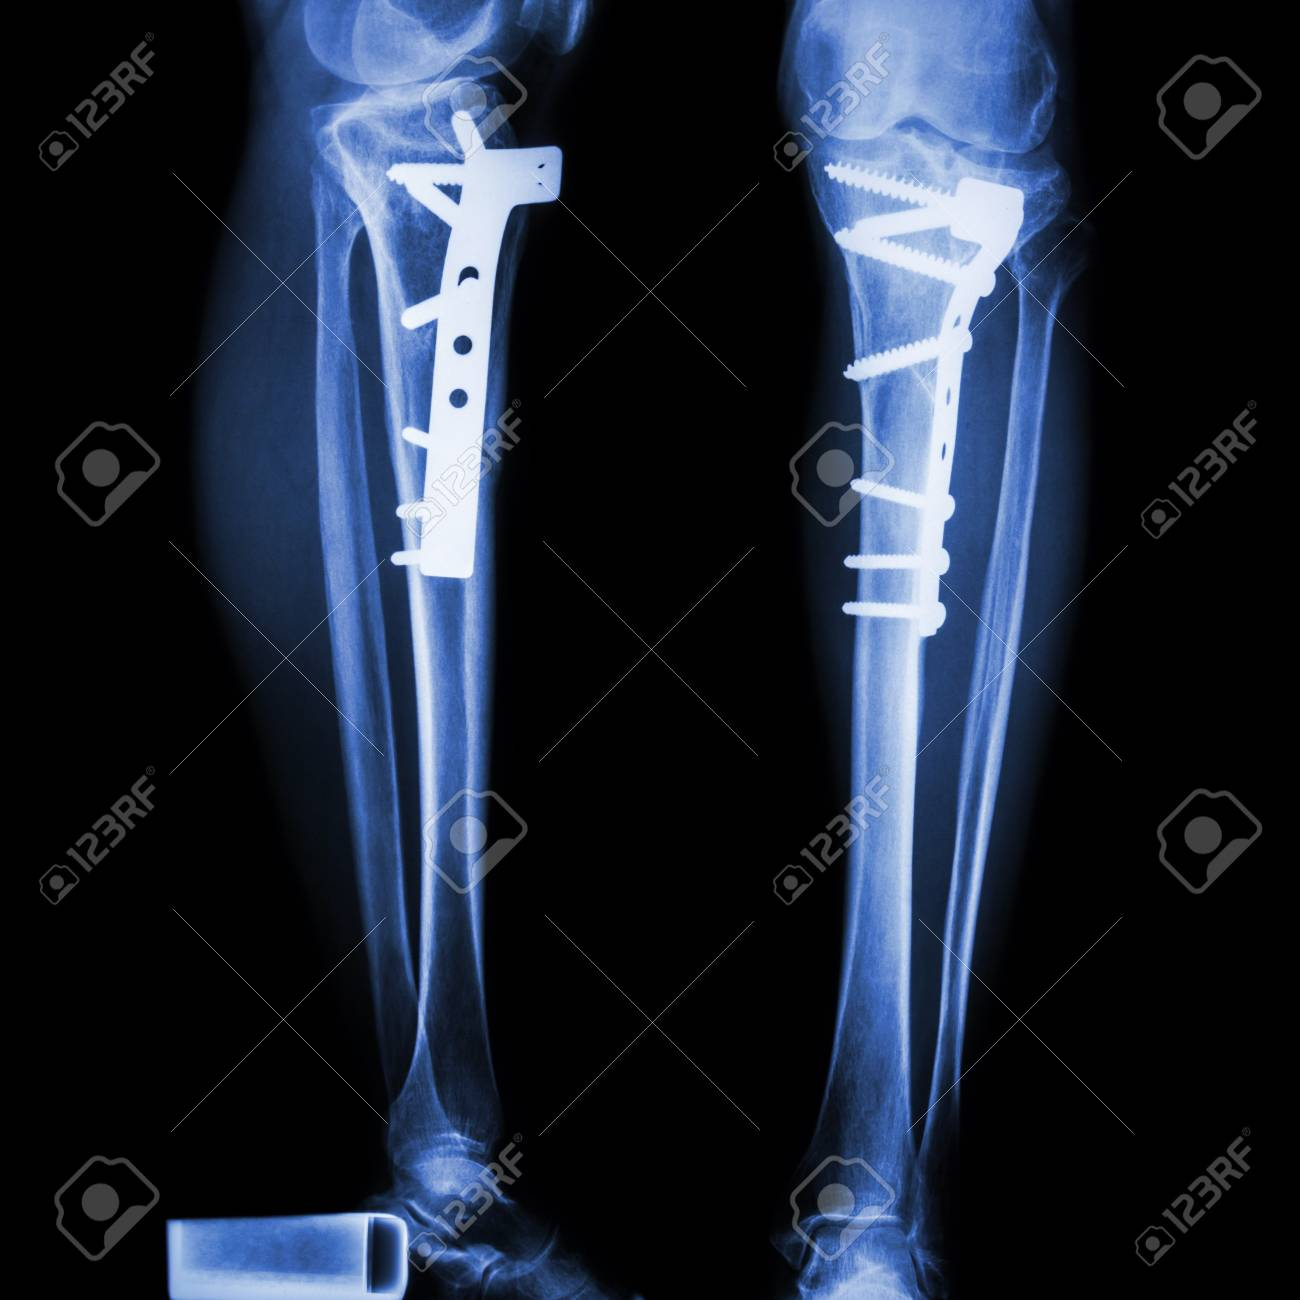 8f8ffc0a21a fracture tibia(leg bone). It was operated and internal fixed by plate&screw  Imagens